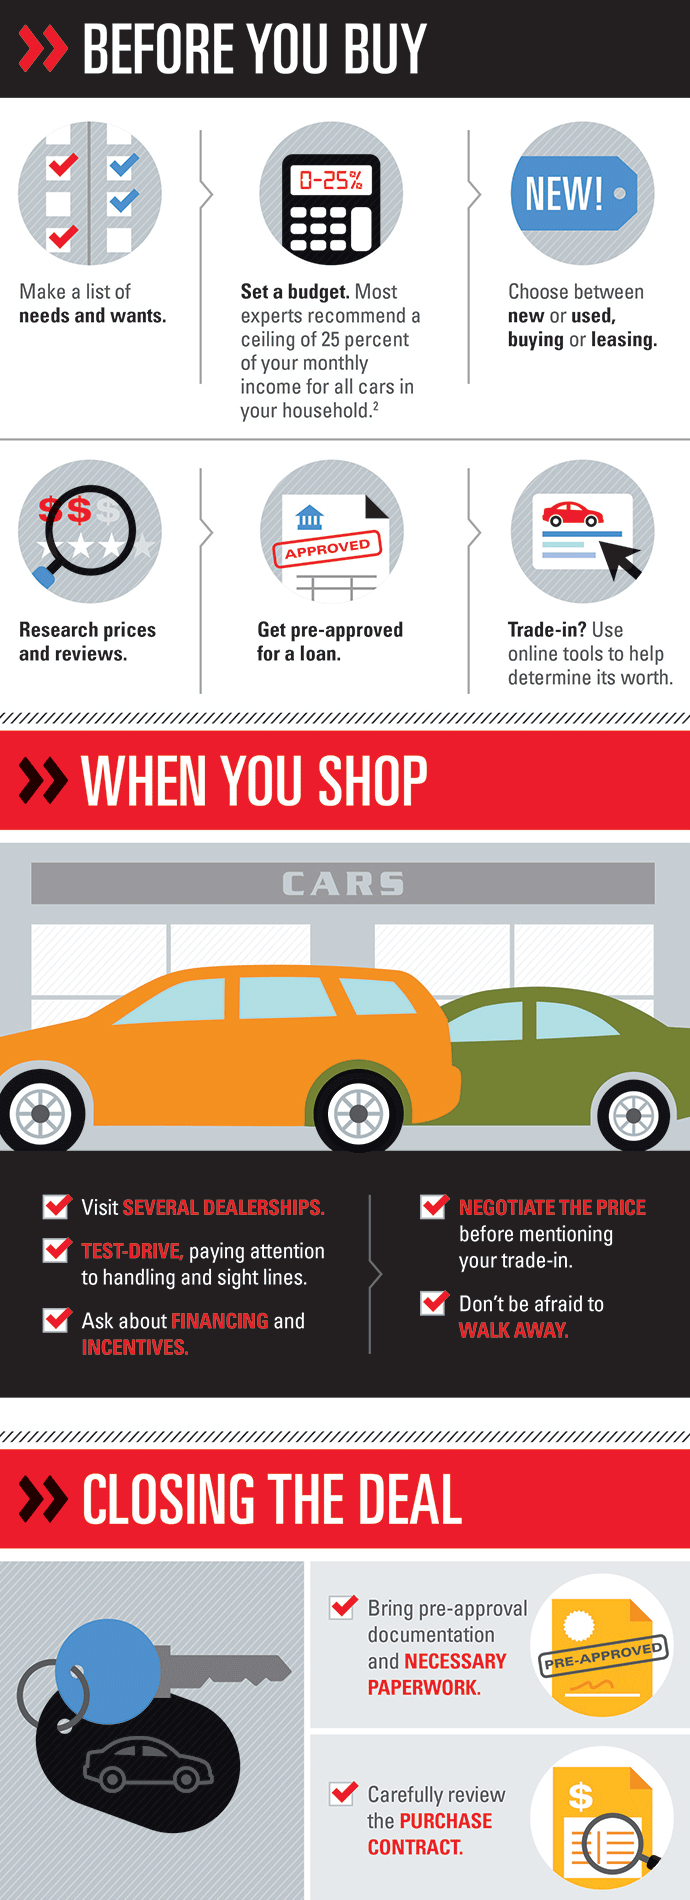 Car Buying Tips Infographic